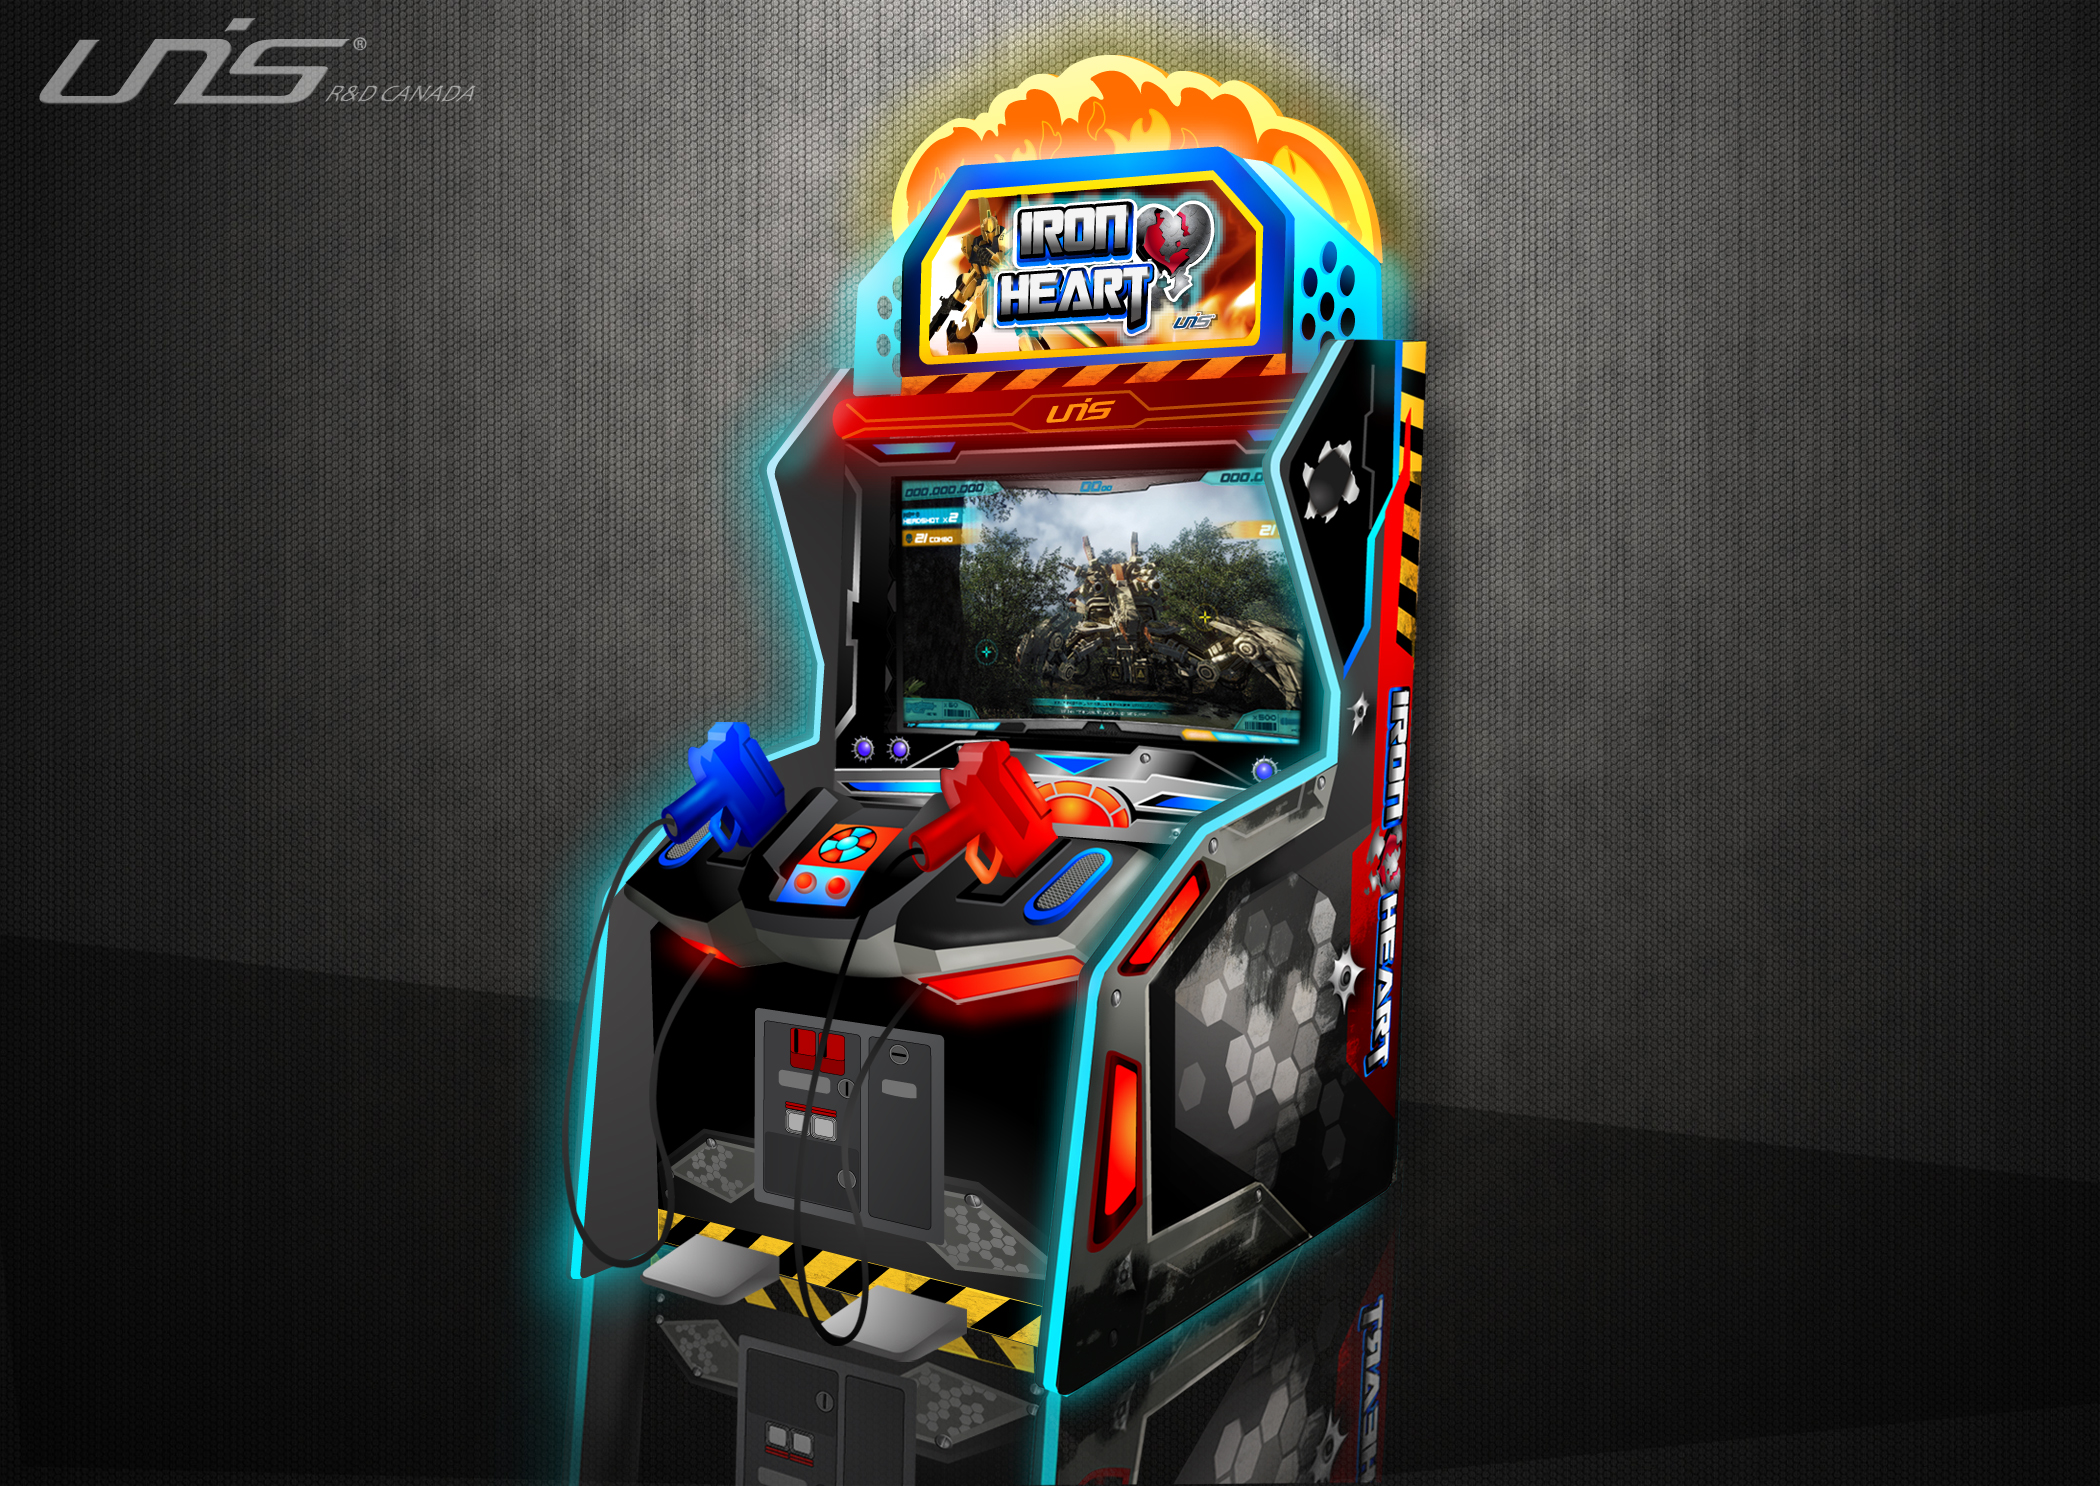 Iron Heart Arcade game: Created design of overall cabinet, lighting, decals, stickers and logos.